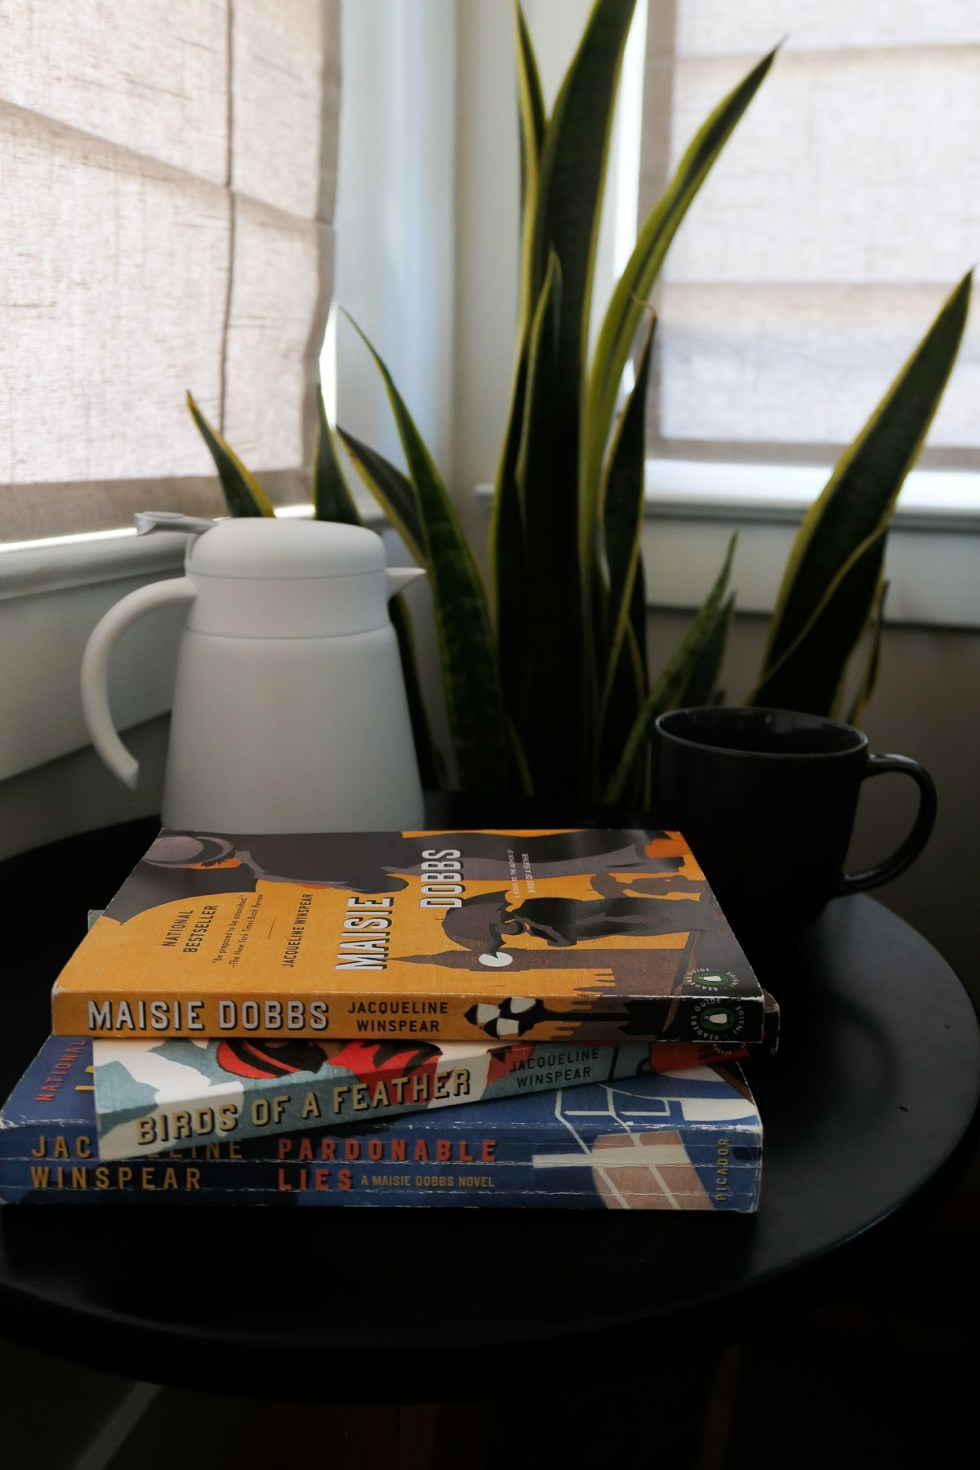 First 3 books of Maisie Dobbs Series Stacked on Side Table